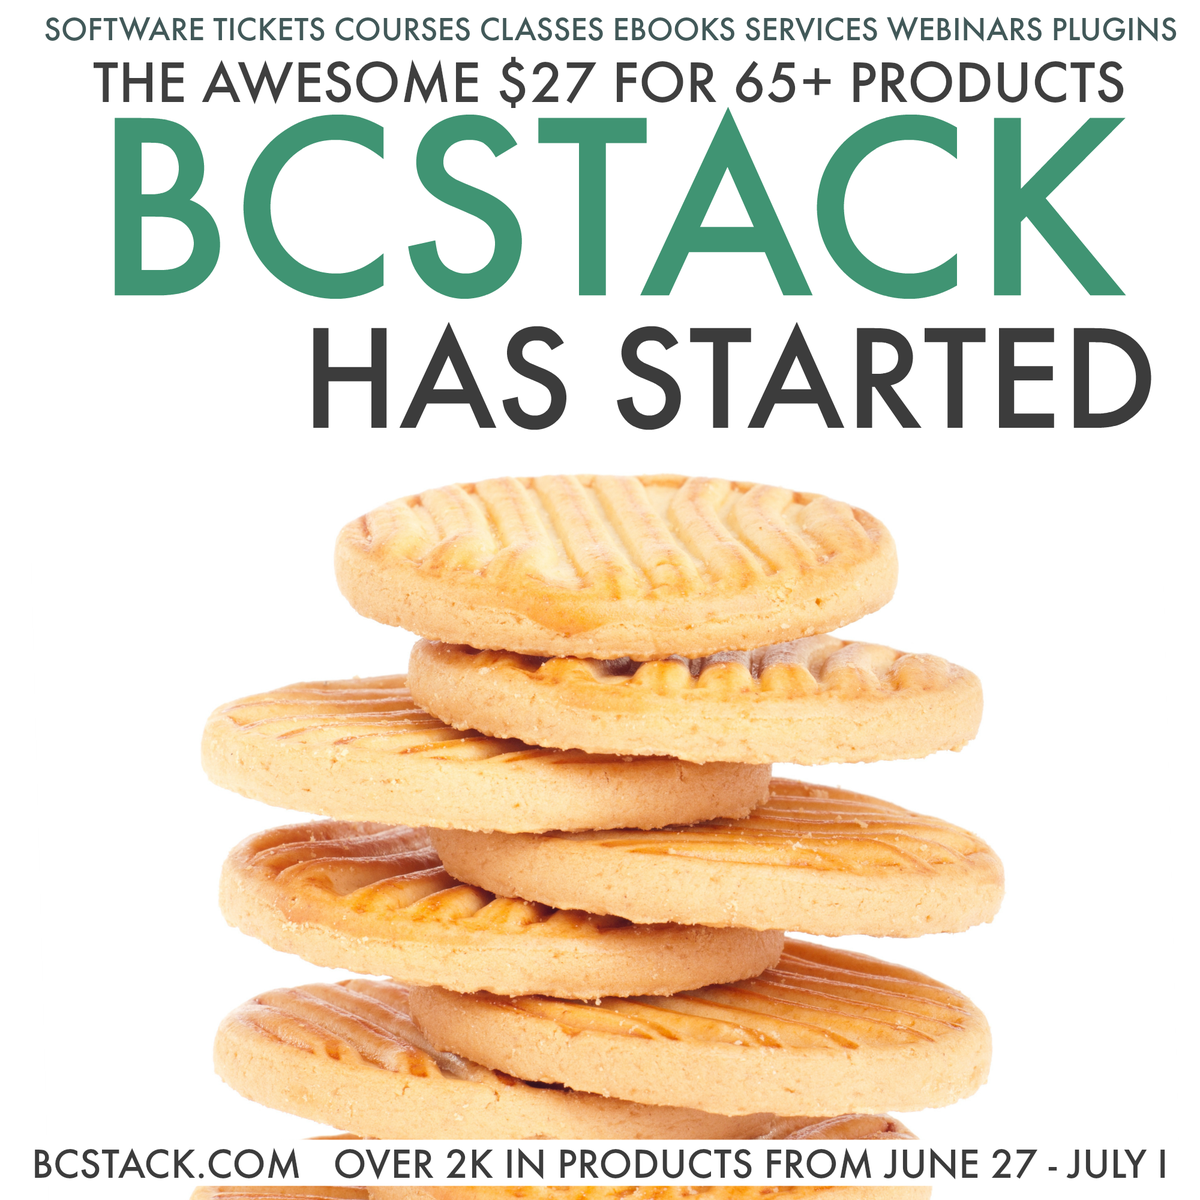 65 products you want, but will never get again at this one price! The BCStack is awesome! https://t.co/4WBUYYG2H6 https://t.co/GAt2492nVe